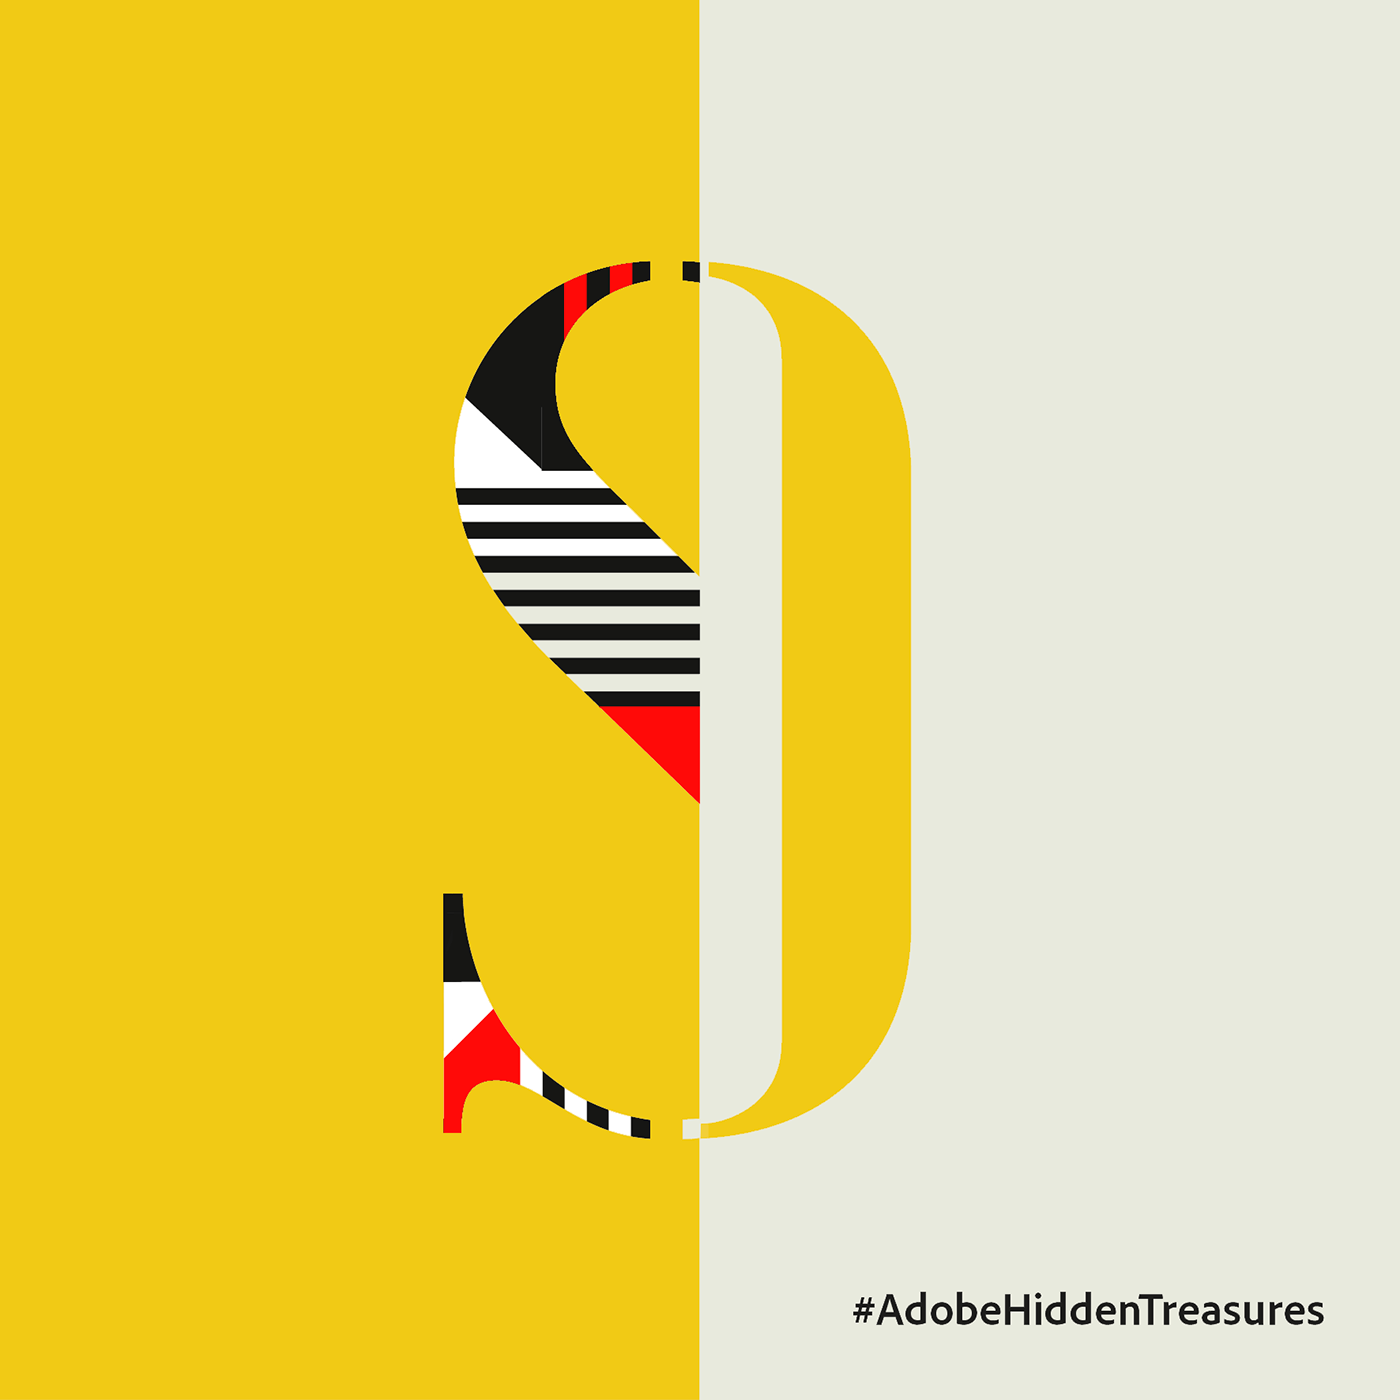 Typography Design | Adobe Hidden Treasures